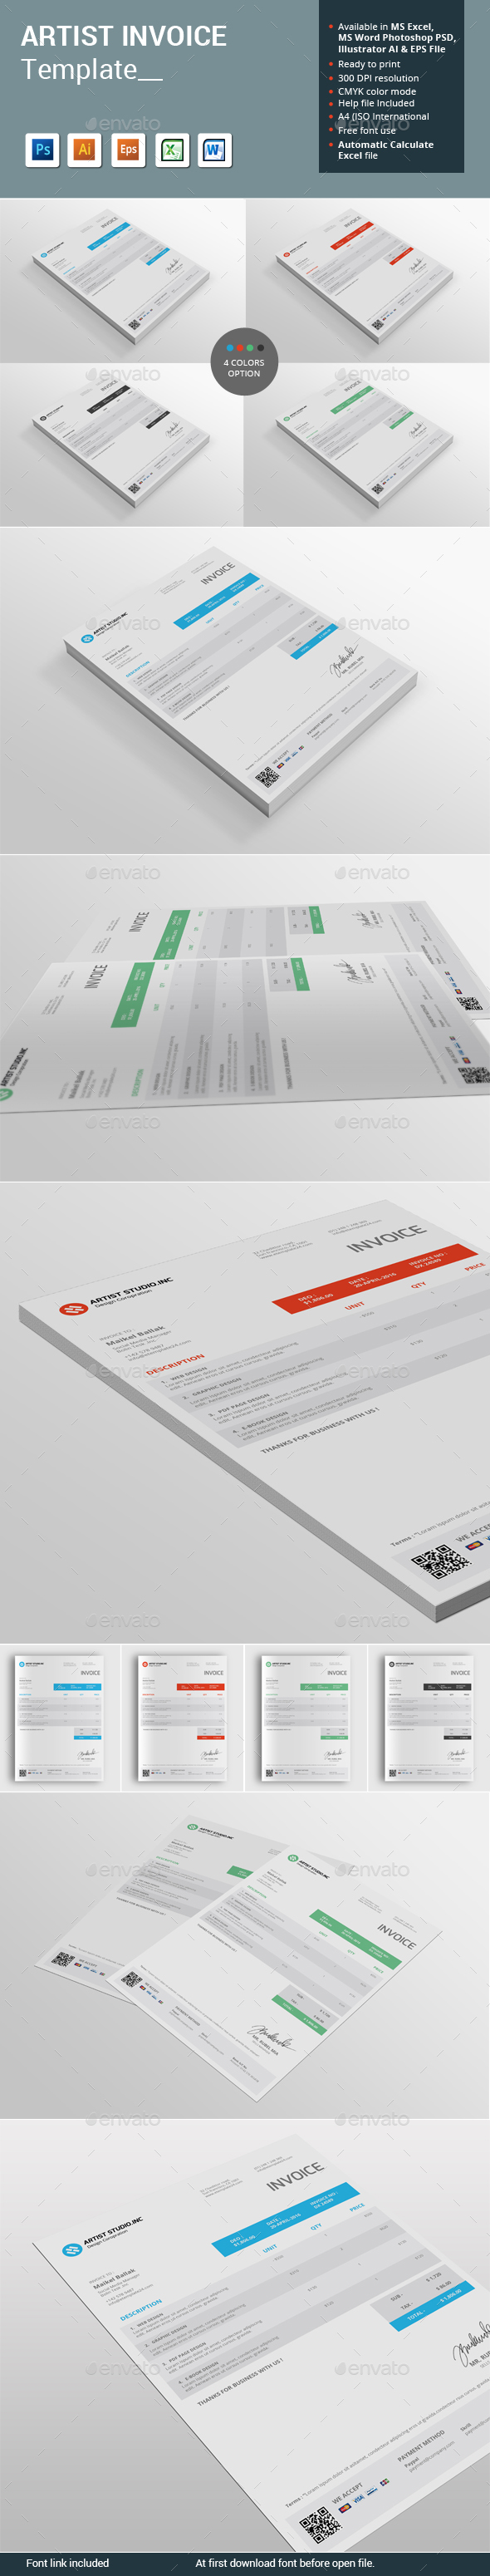 Artist Invoice Template - Proposals & Invoices Stationery